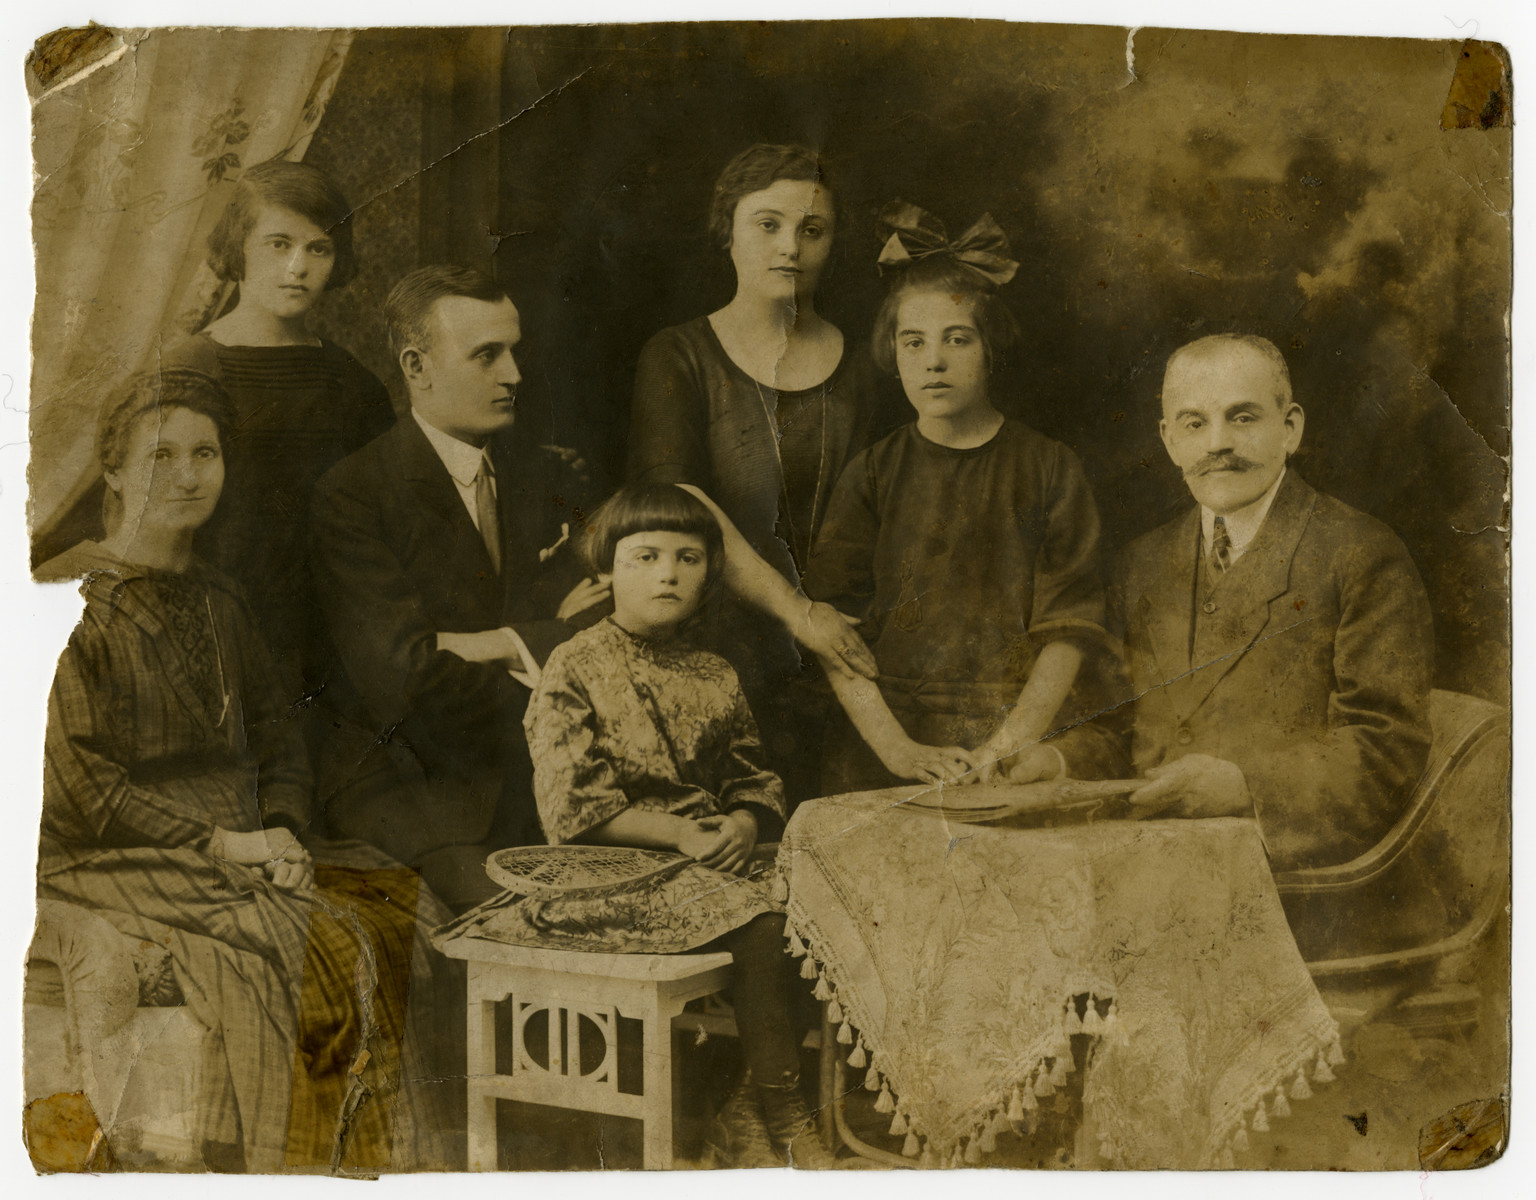 Prewar family portrait Cecilia and Lajos Klein (grandparents of the donor) and their five children.  From the left to right are Cecilia nee Fogel Klein, Ilonka, Sandor, Frederika, Mariska, Rozsa and Lajos Klein.